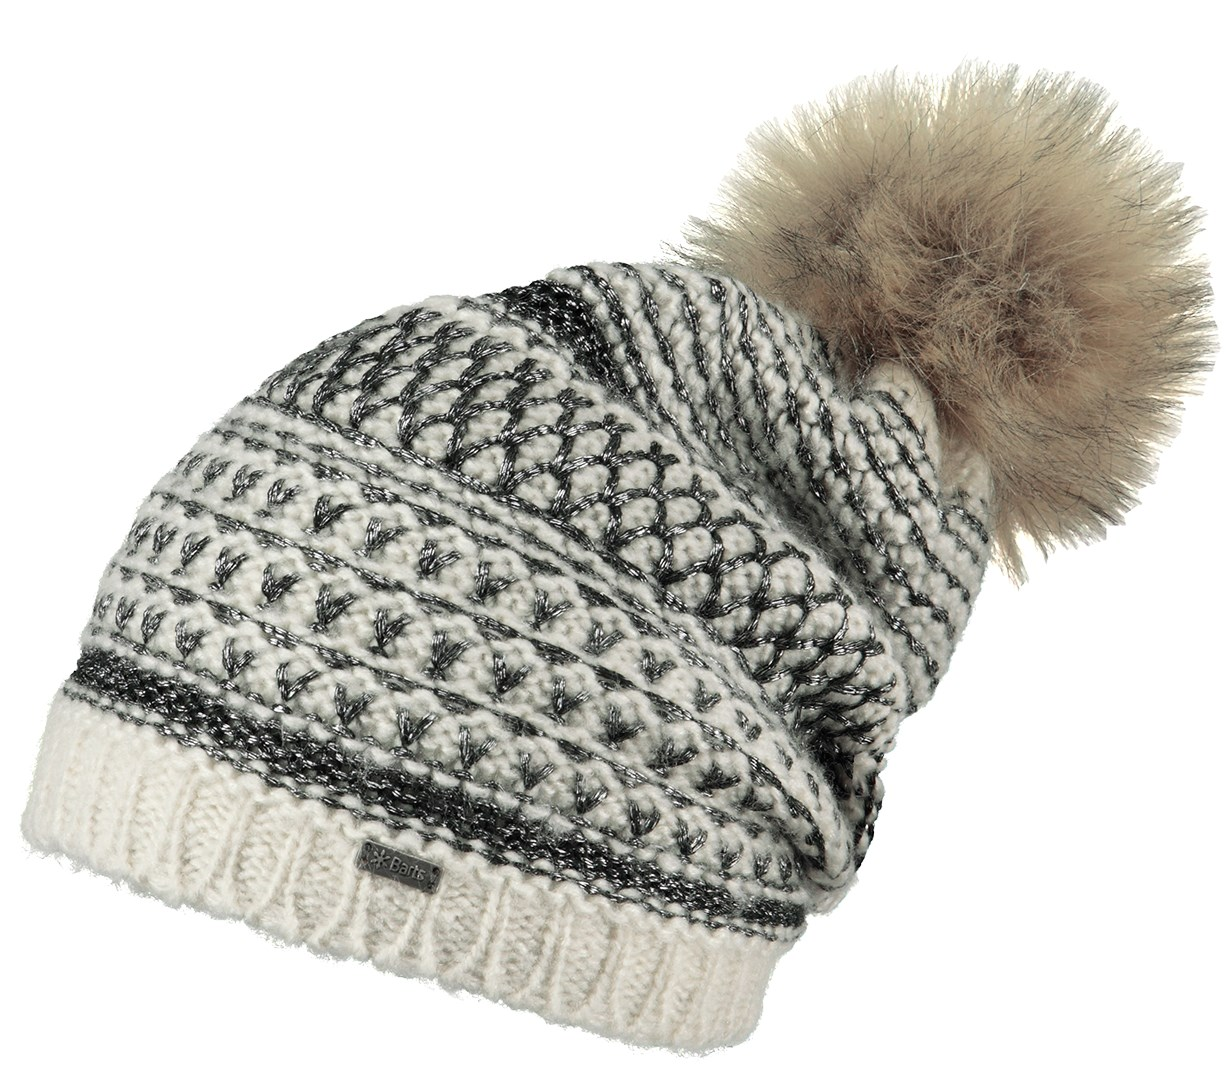 c035658e2aa Barts Aurora Ladies Pompom Beanie Mascarpone. 0 (Be the first to add a  review!)